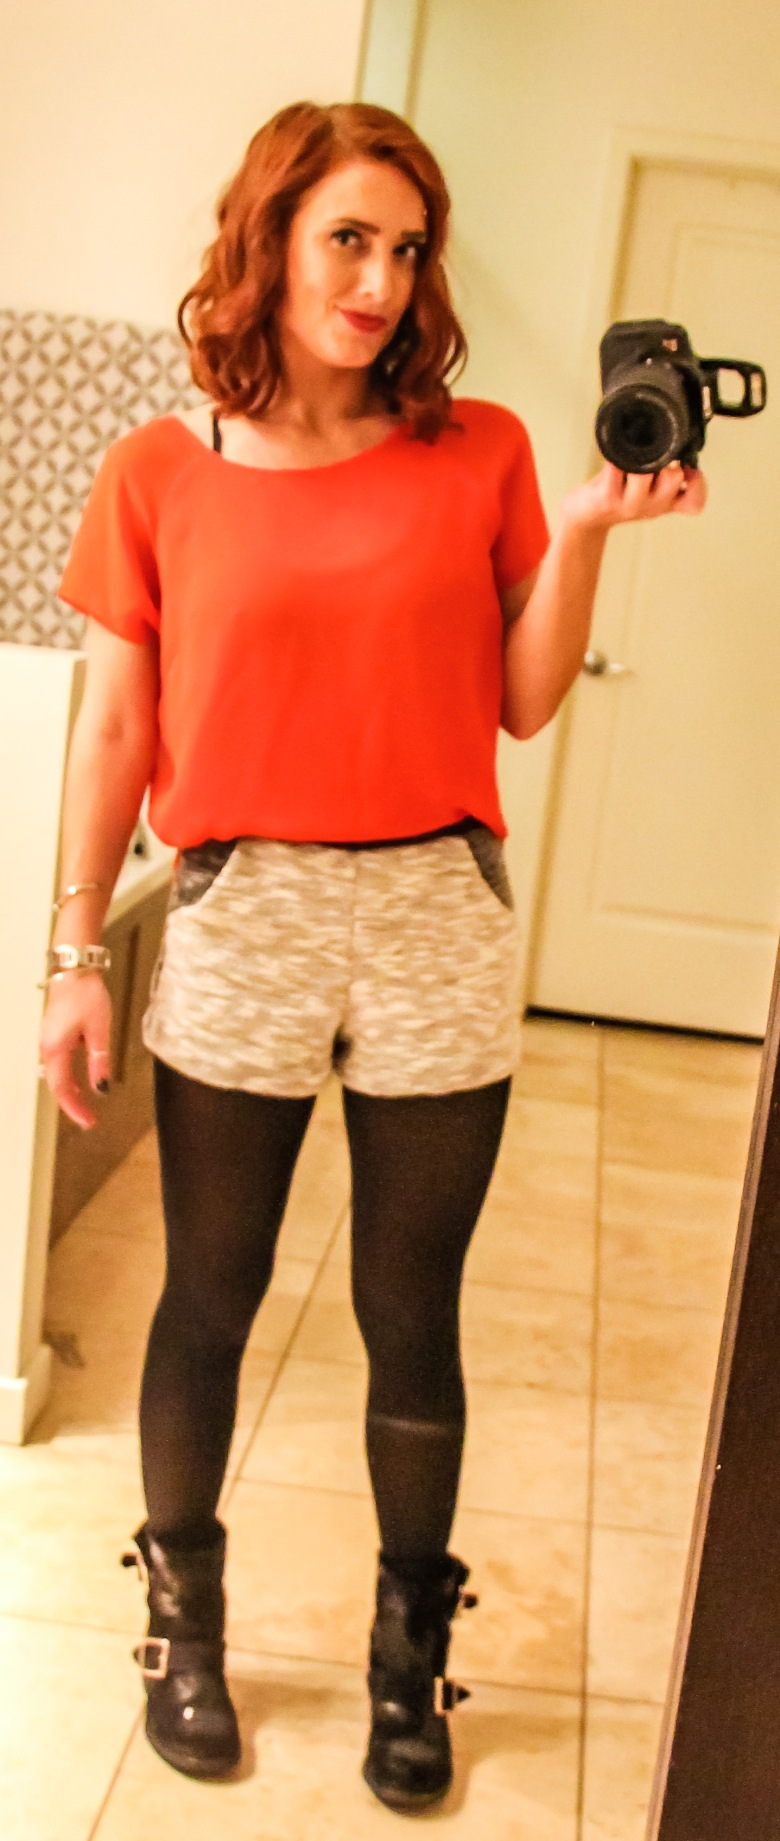 This pop of color also does the same as the white top. The contrasting colors cause the eye to divide each section and notice the length of each individually. Don't worry though, I'll demonstrate great ways to wear color in the future, but with the black tights, a black shirt is probably going to be the best option.